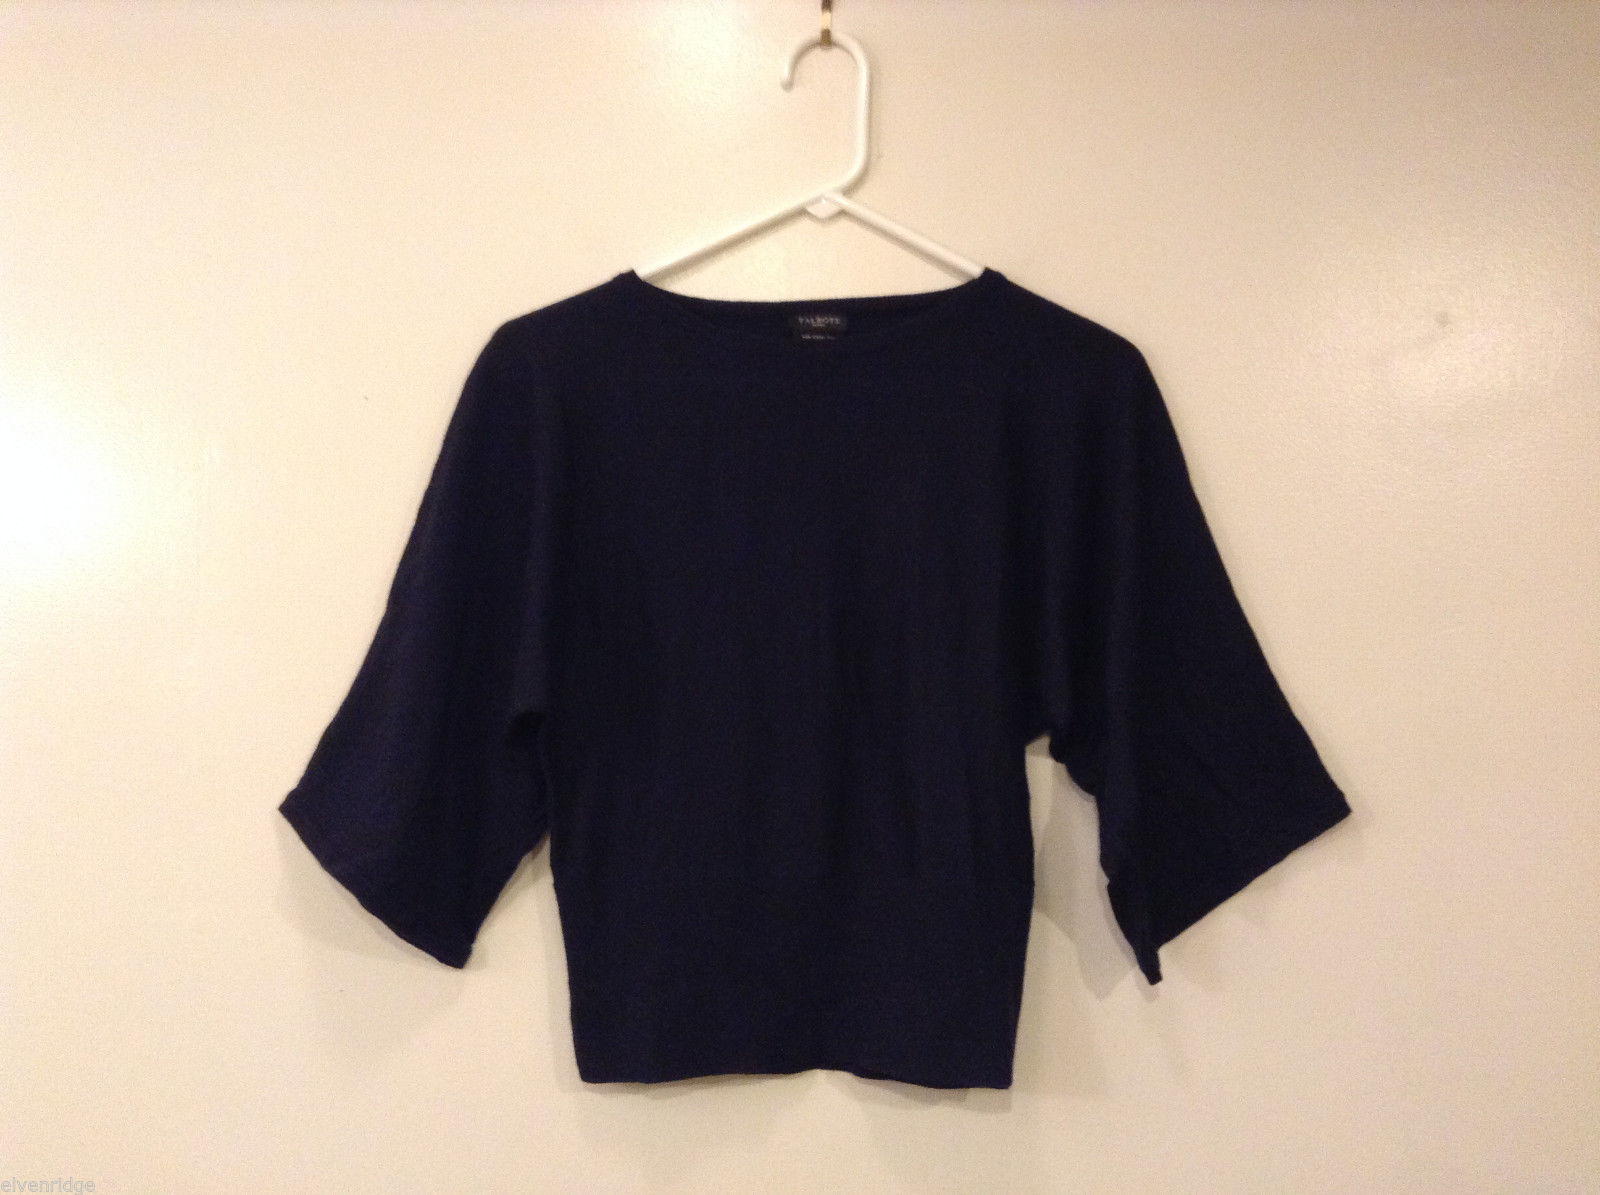 Talbots Petites Navy Blue Blouse Sweater 100% Merino Wool 1/2 sleeve, size S